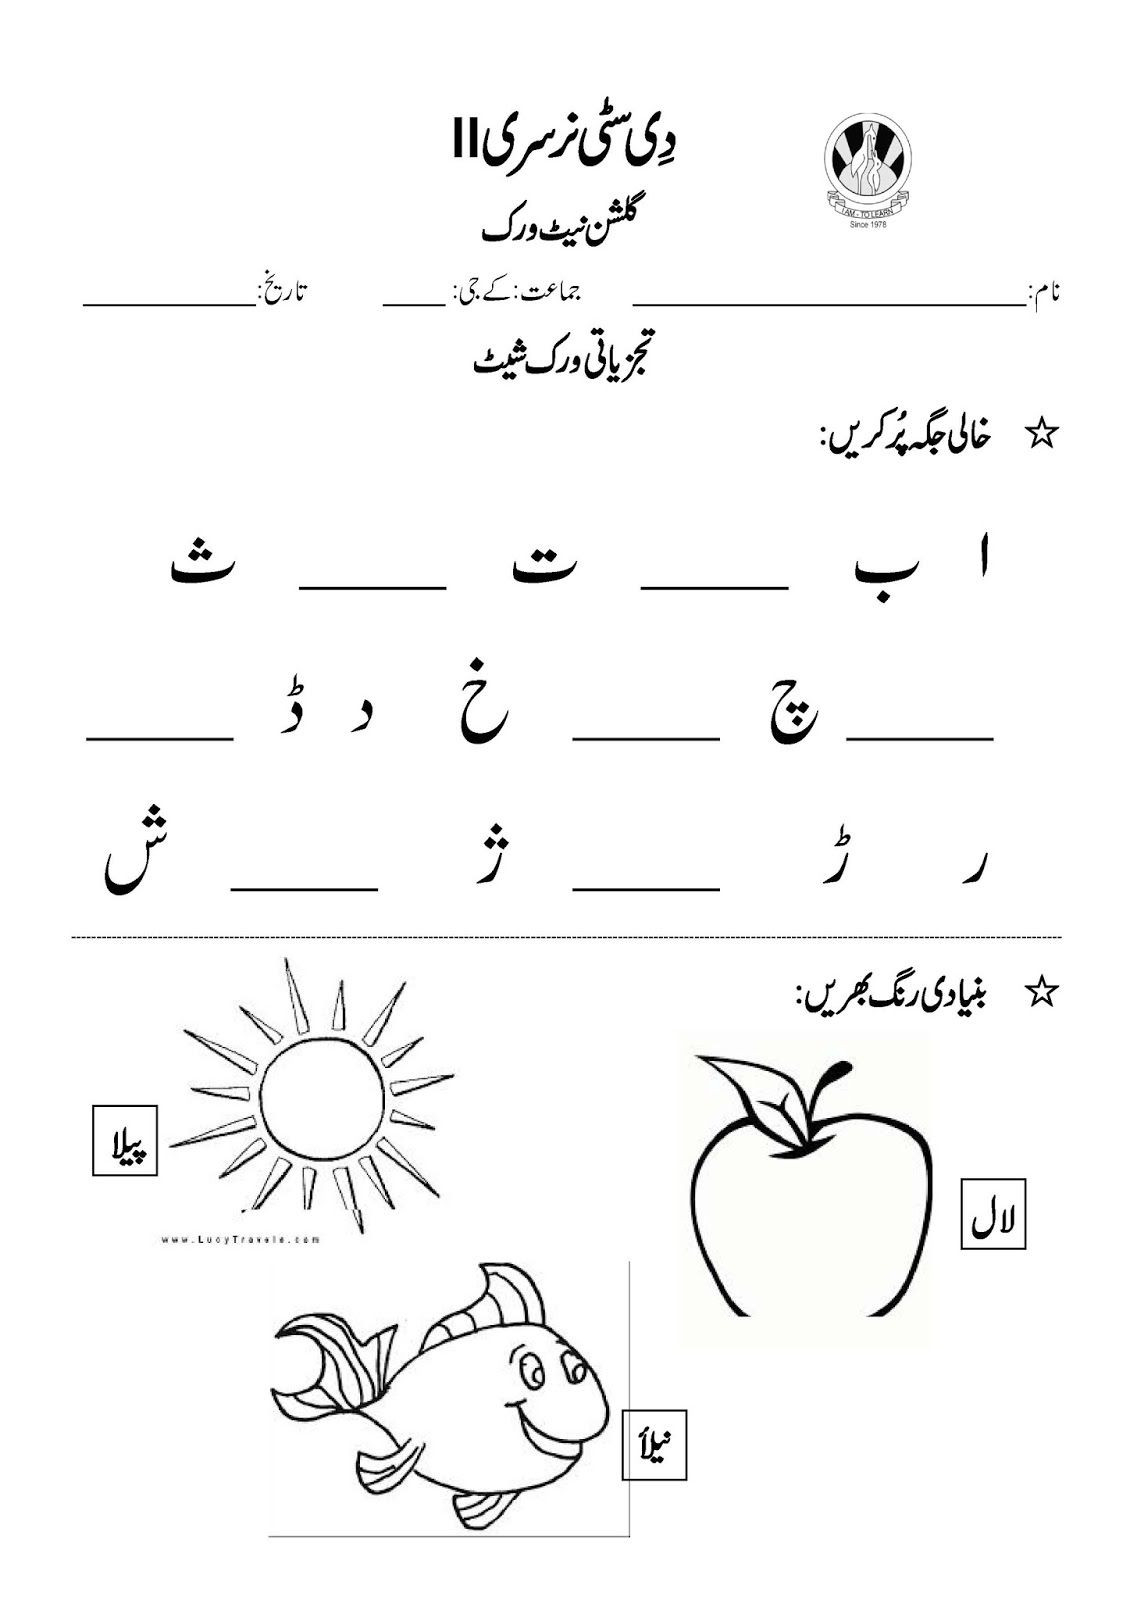 3 Alphabet Worksheets Urdu - Worksheets Schools with regard to Alphabet Urdu Worksheets Pdf